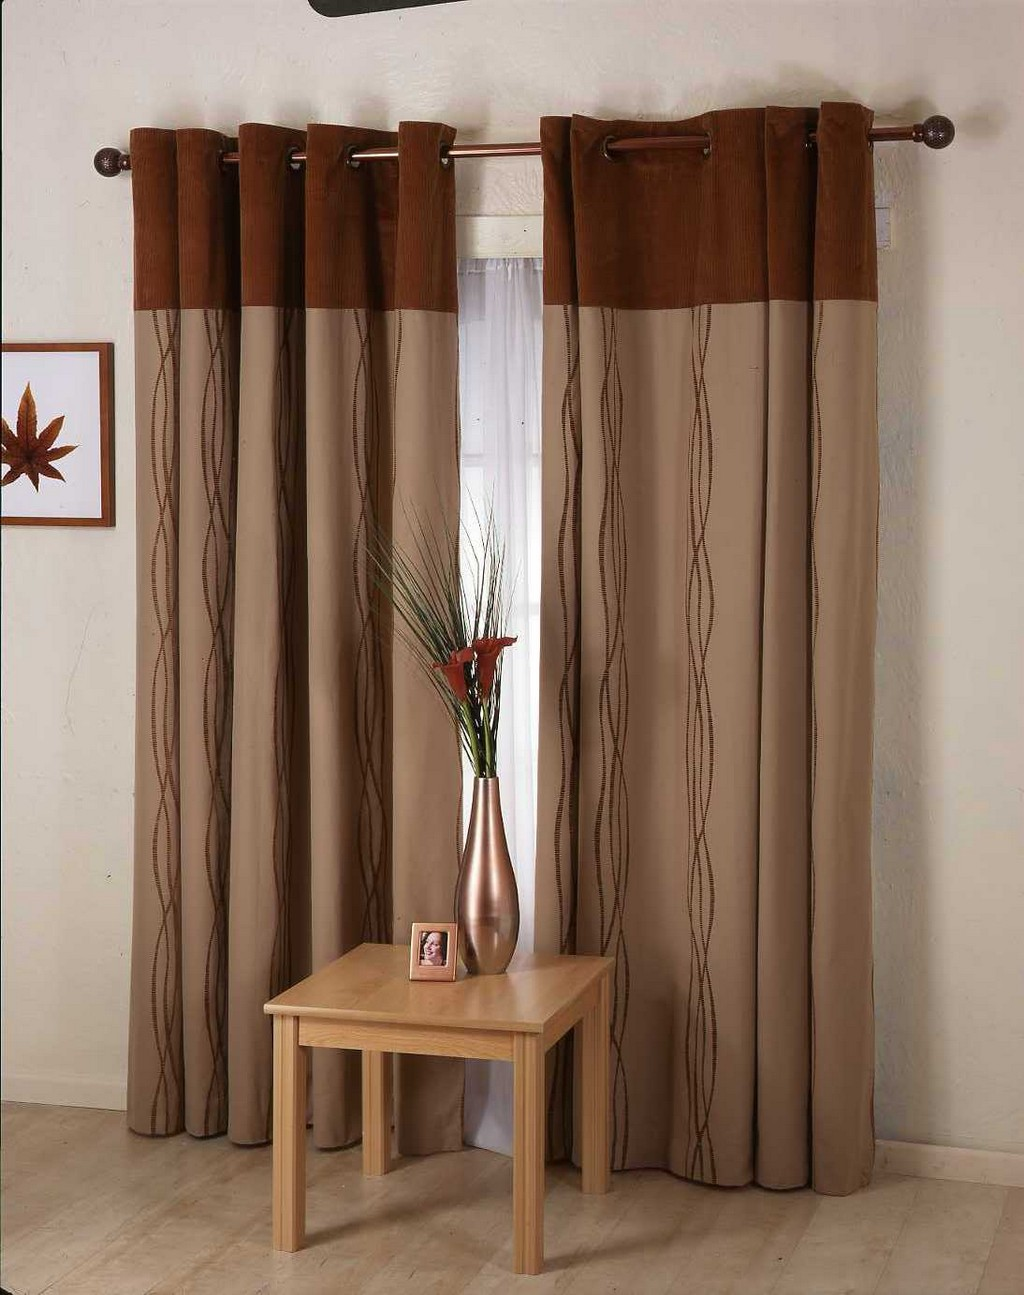 discounted country curtains, kitchen mats & curtains, curtain rods curved shower diameter pieces, black white kitchen curtains